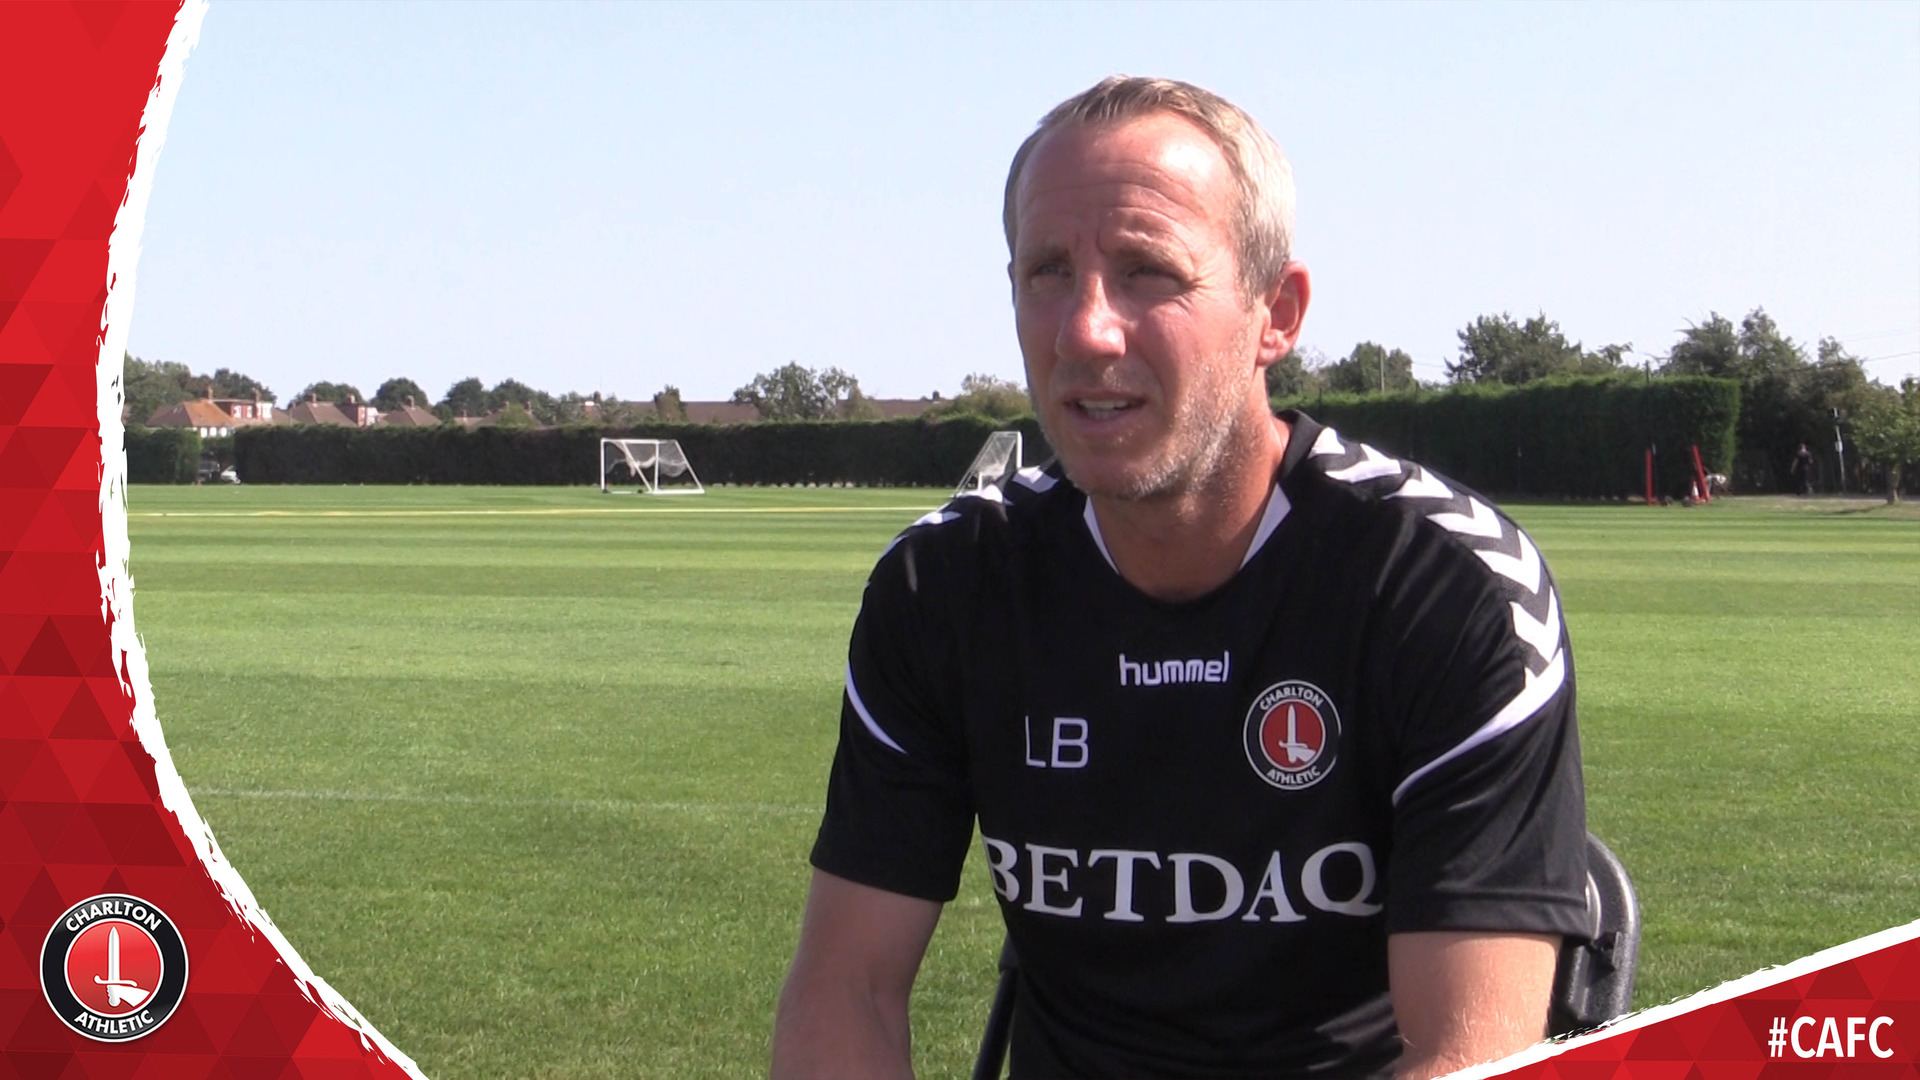 Lee Bowyer on transfers and Patrick Bauer